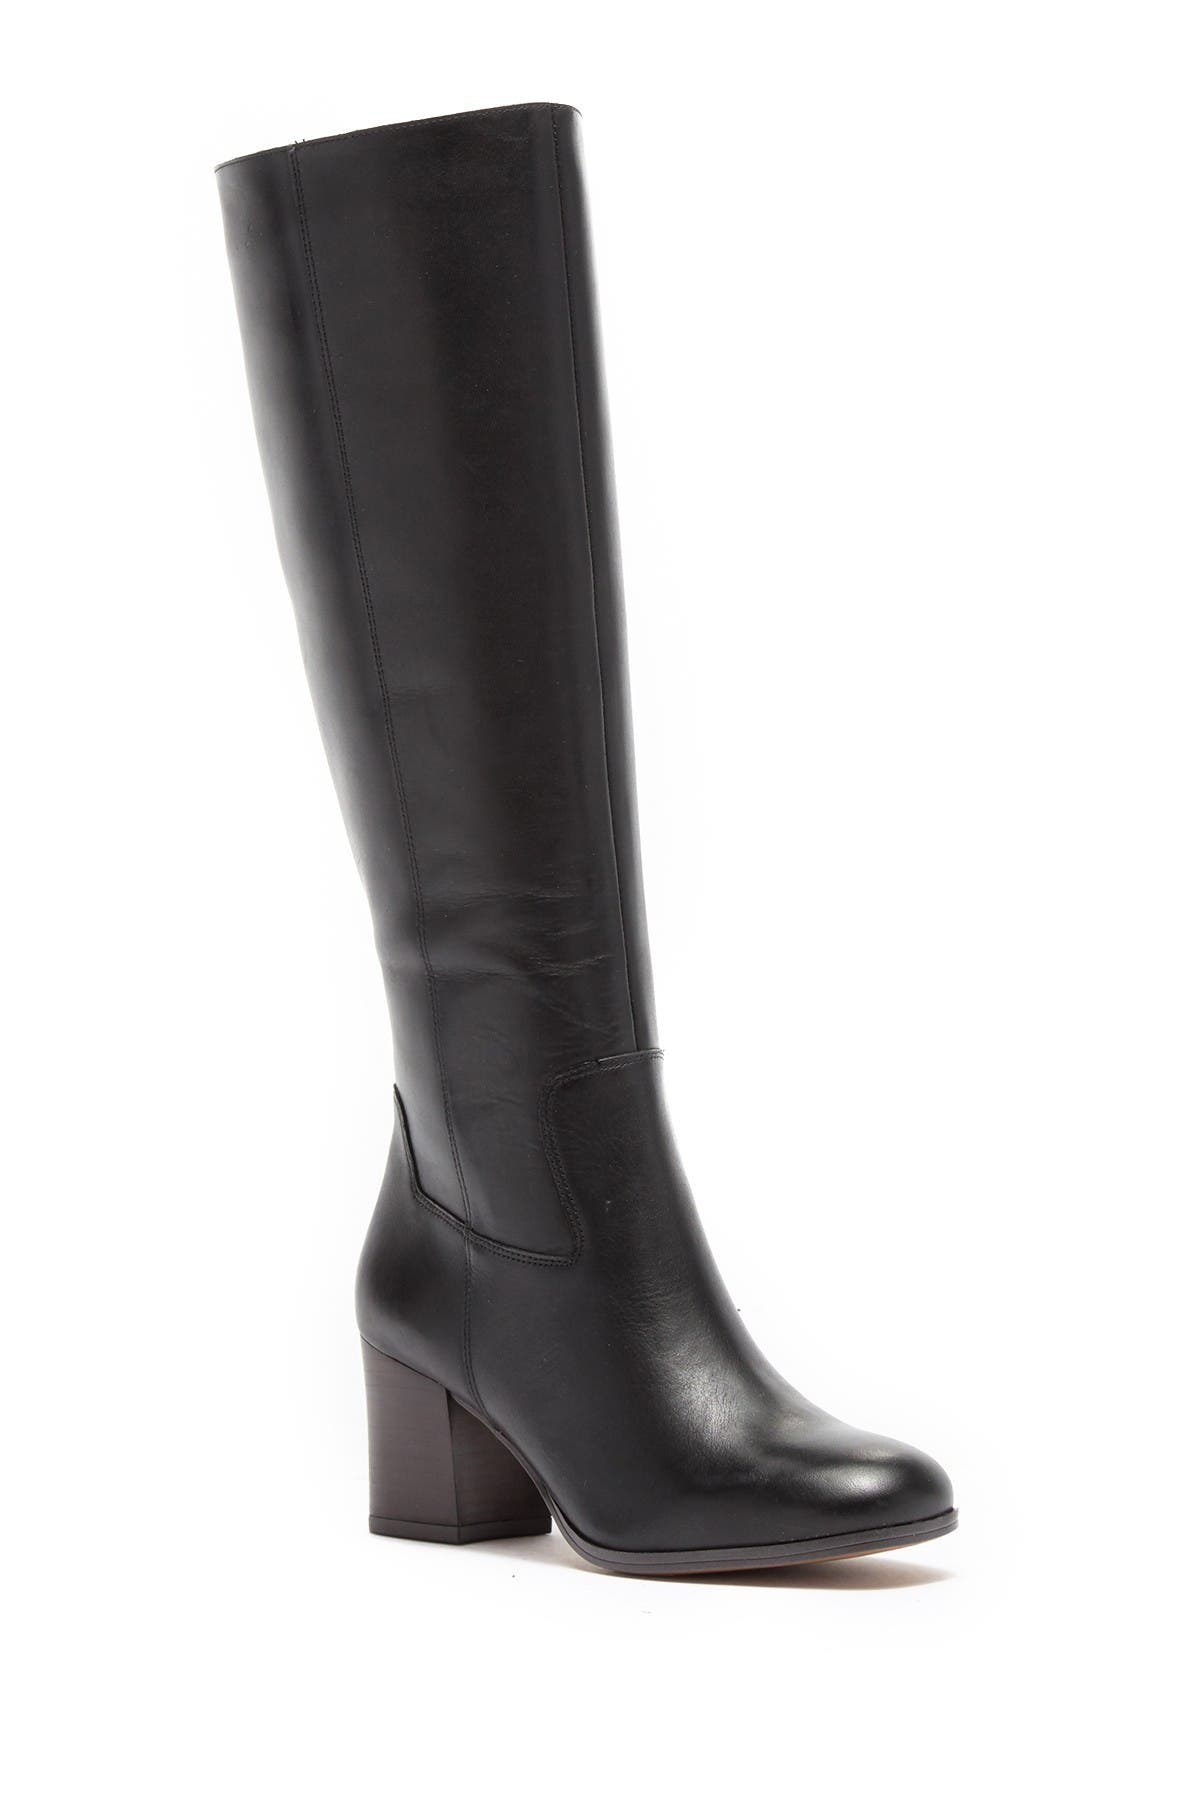 Image of Franco Sarto Anberlin Leather Block Heel Knee-High Boot